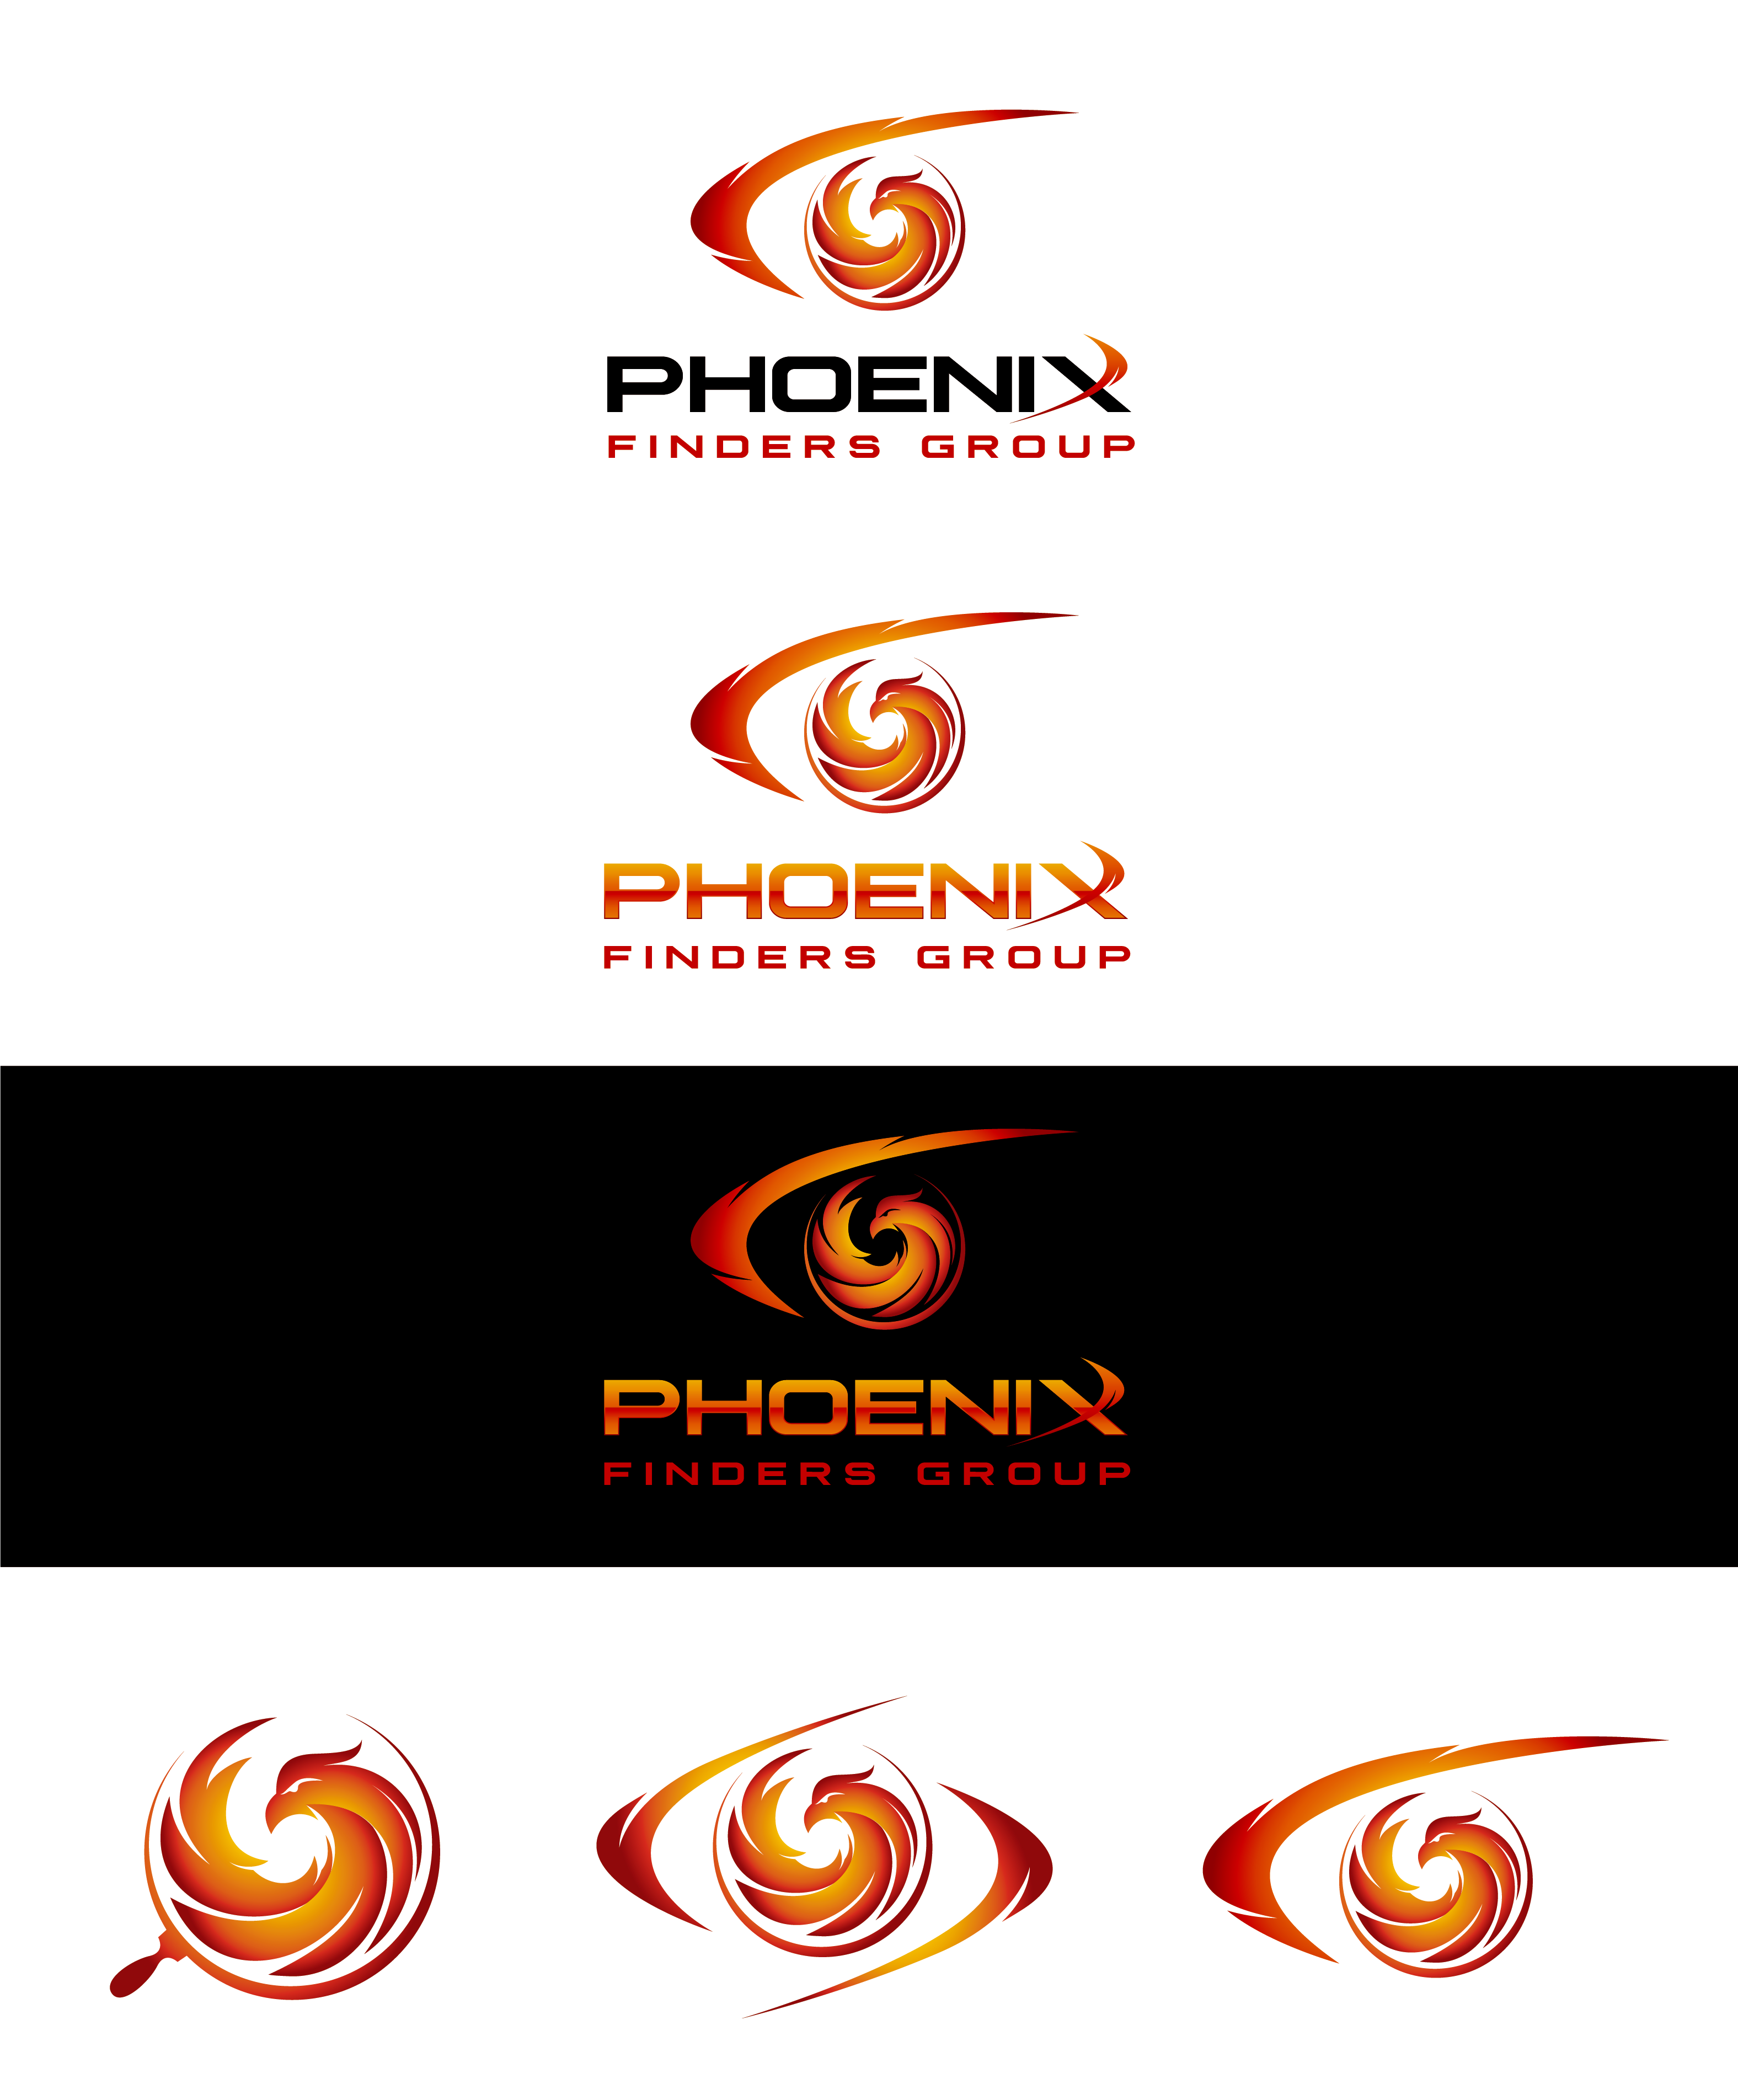 New Company being resurrected needs a new exciting logo in a somewhat boring industry